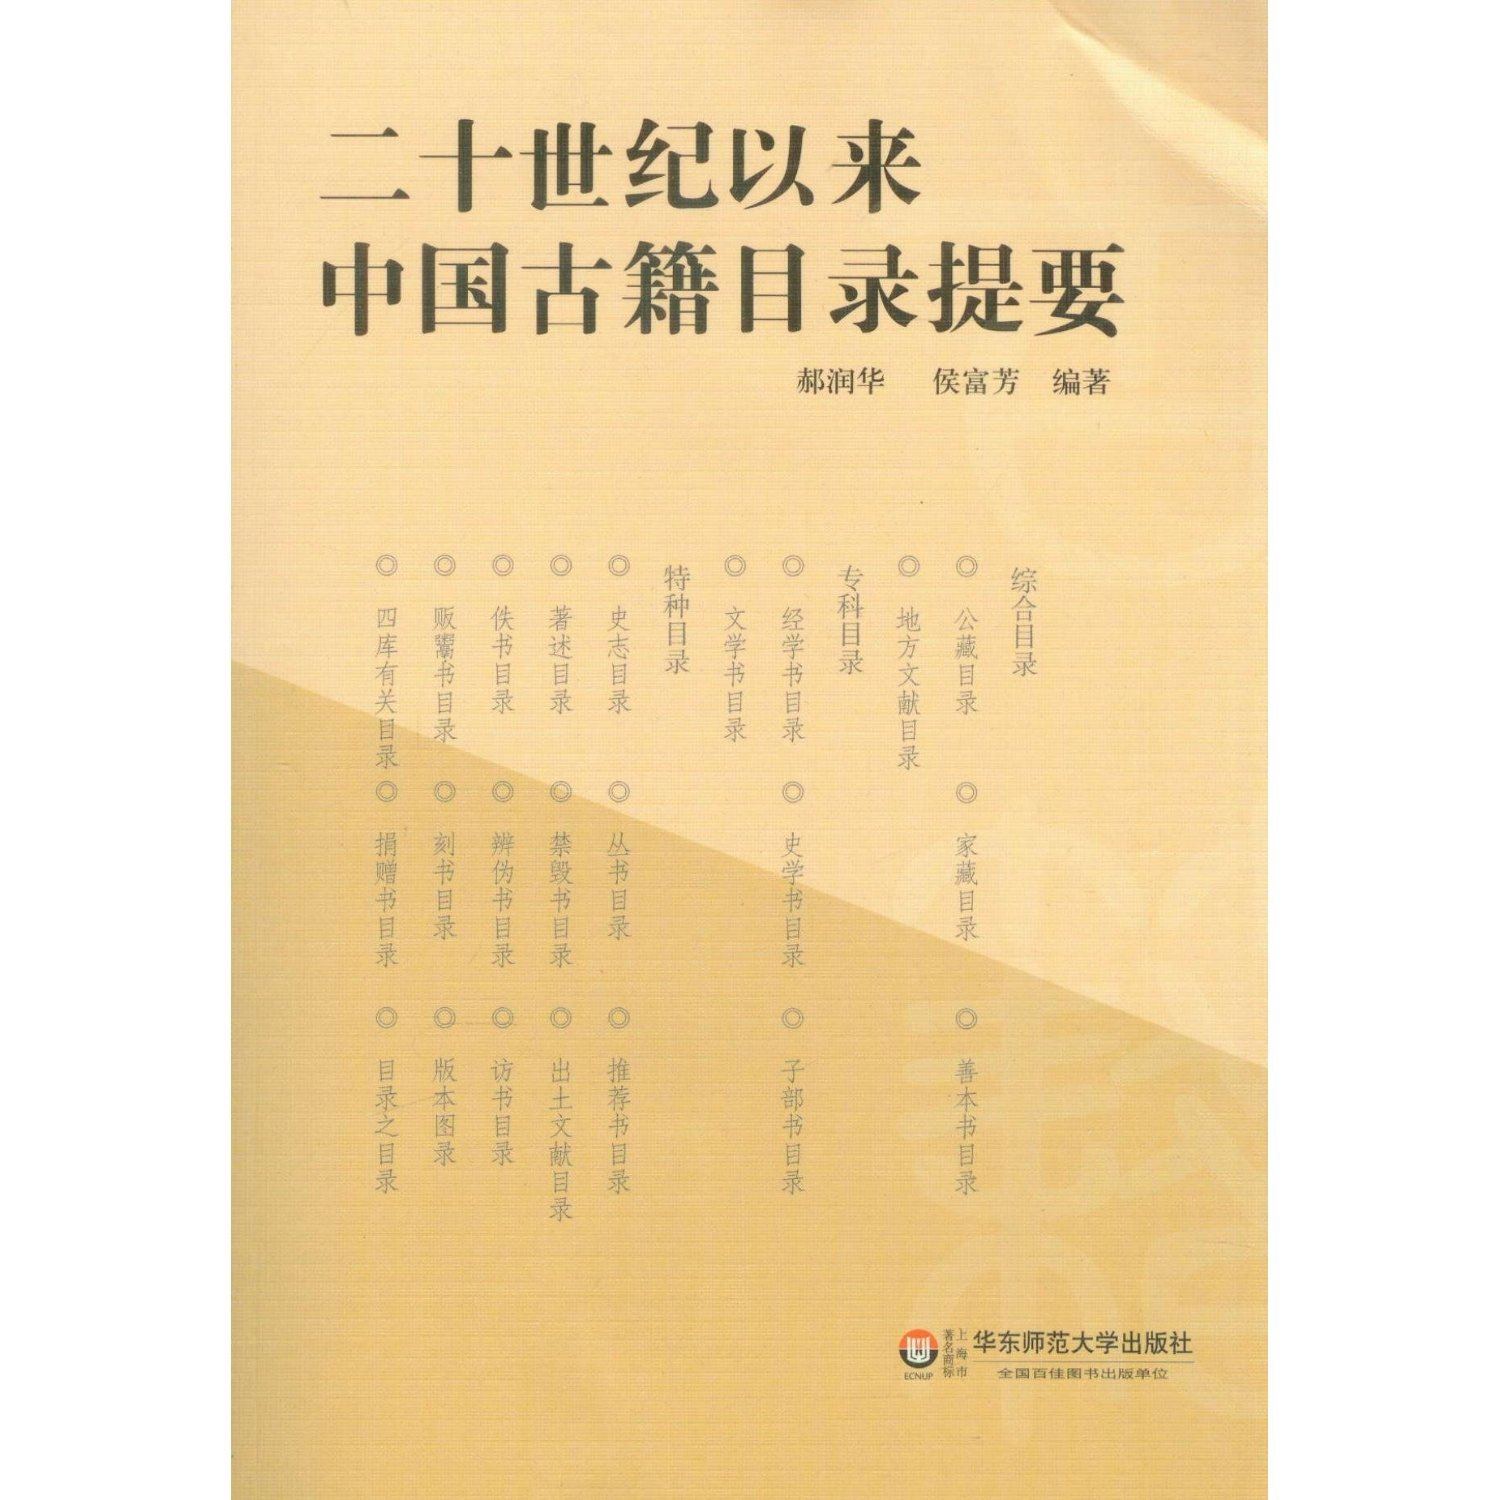 Read Online The Catalogs of Ancient Books since 20th Century (Chinese Edition) ebook